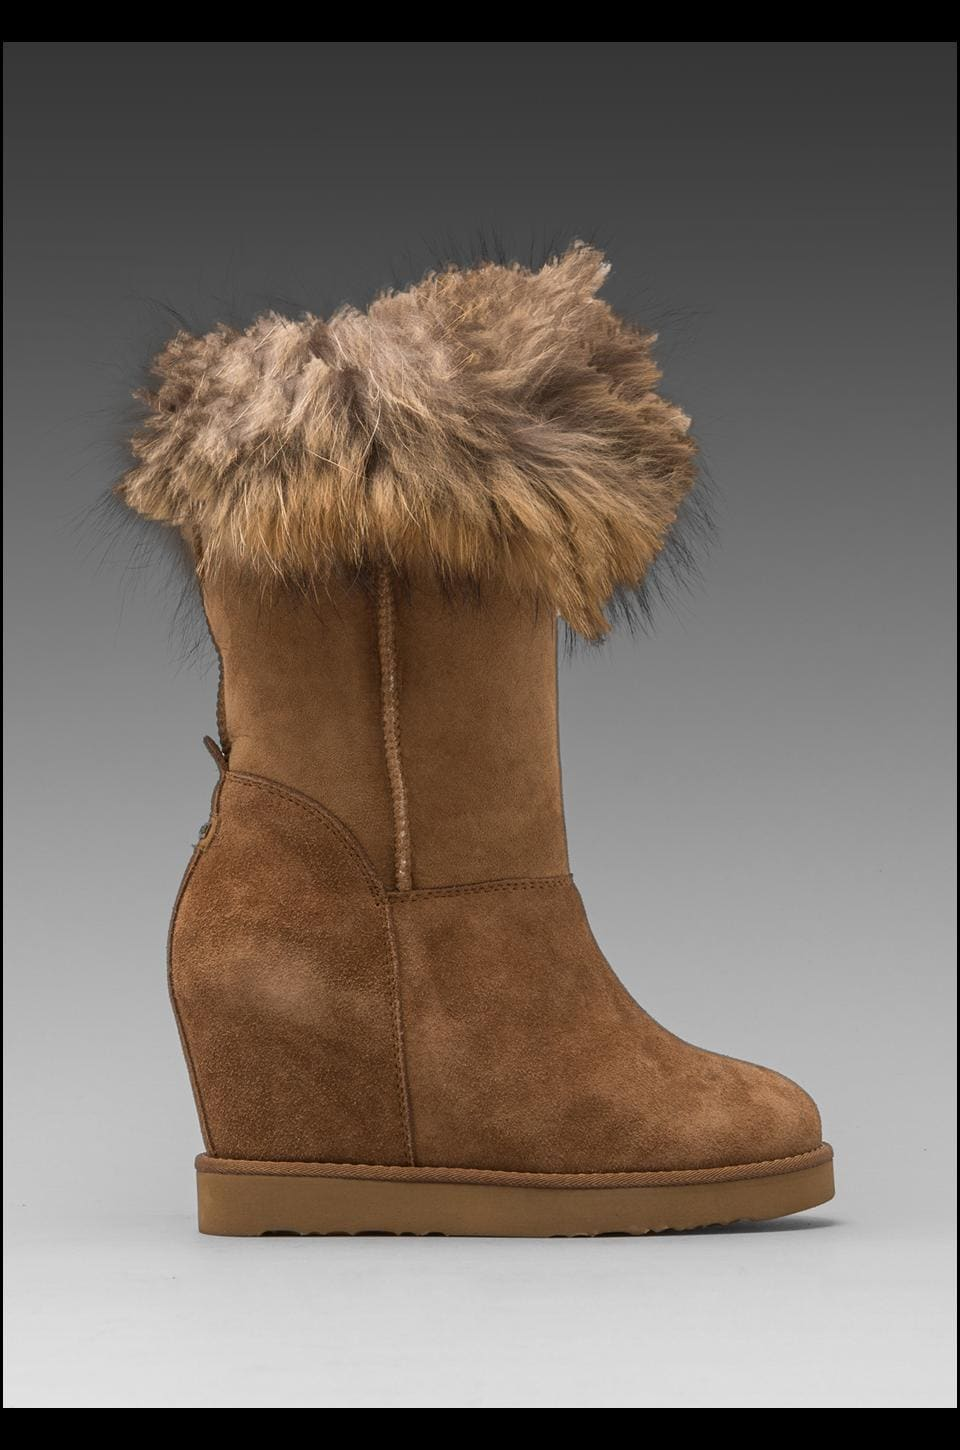 Australia Luxe Collective Foxy Wedge Boot with Asiatic Raccoon Fur in Chestnut